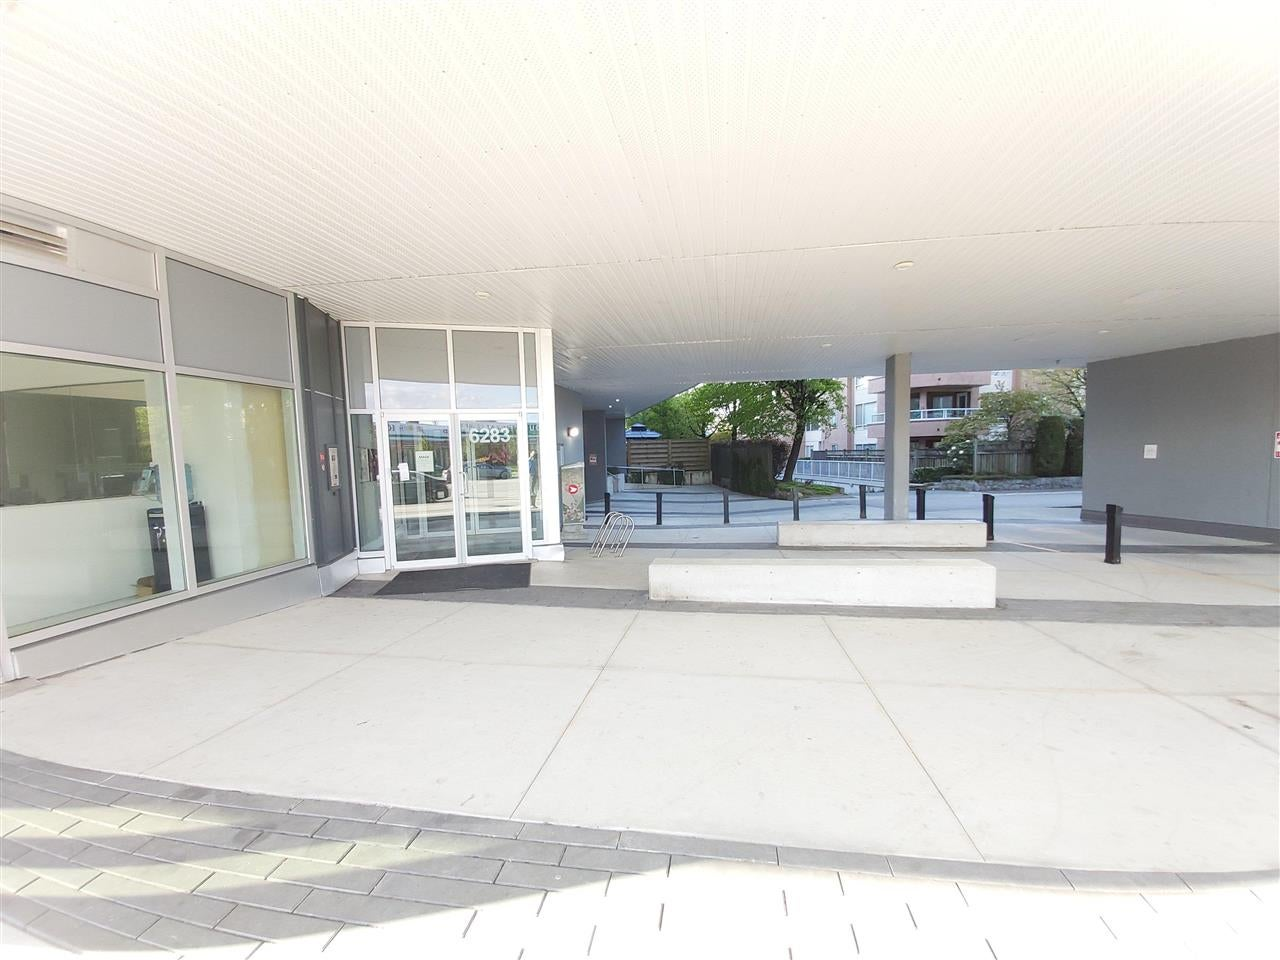 219 6283 KINGSWAY - Highgate Apartment/Condo for sale, 2 Bedrooms (R2576169) - #12